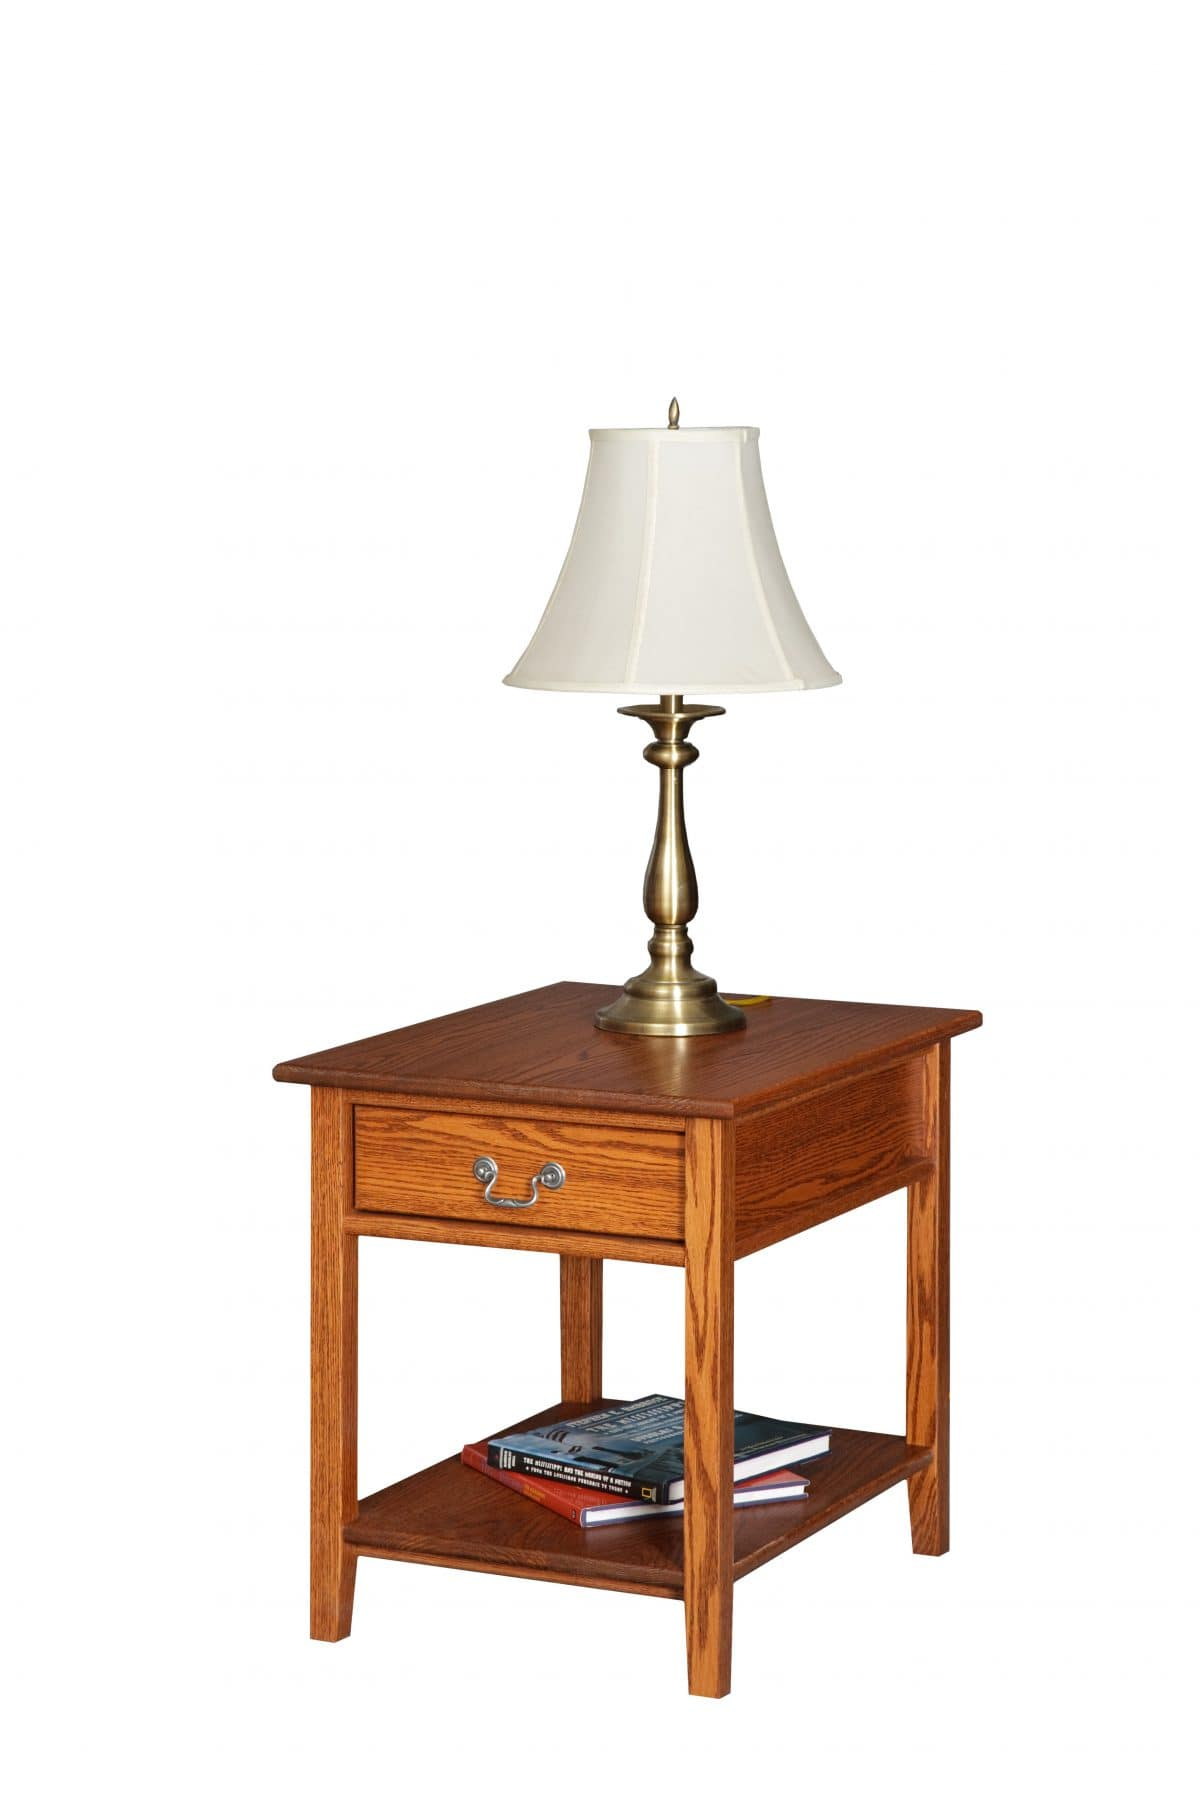 Photo of: MPW SHAKER END TABLE